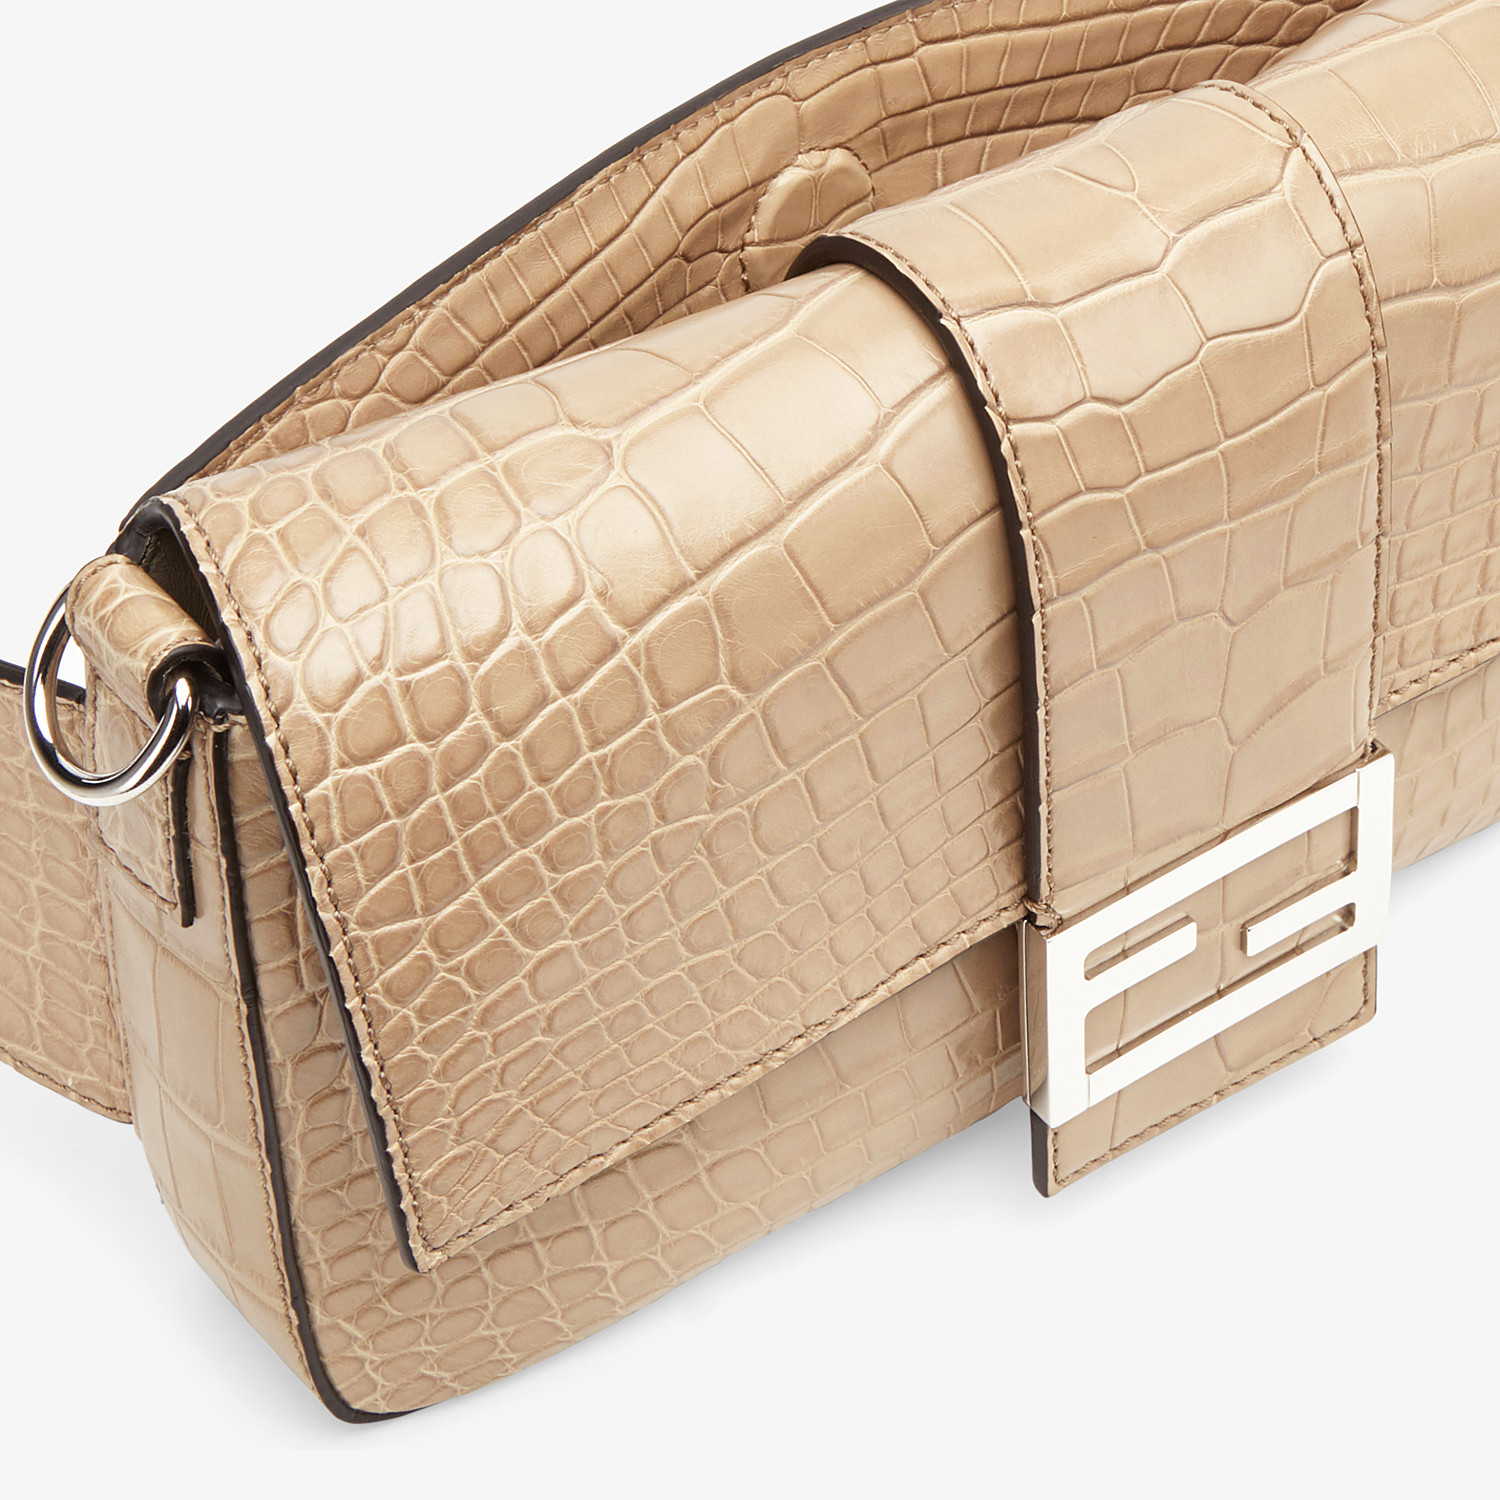 FENDI BAGUETTE - Beige alligator bag - view 6 detail